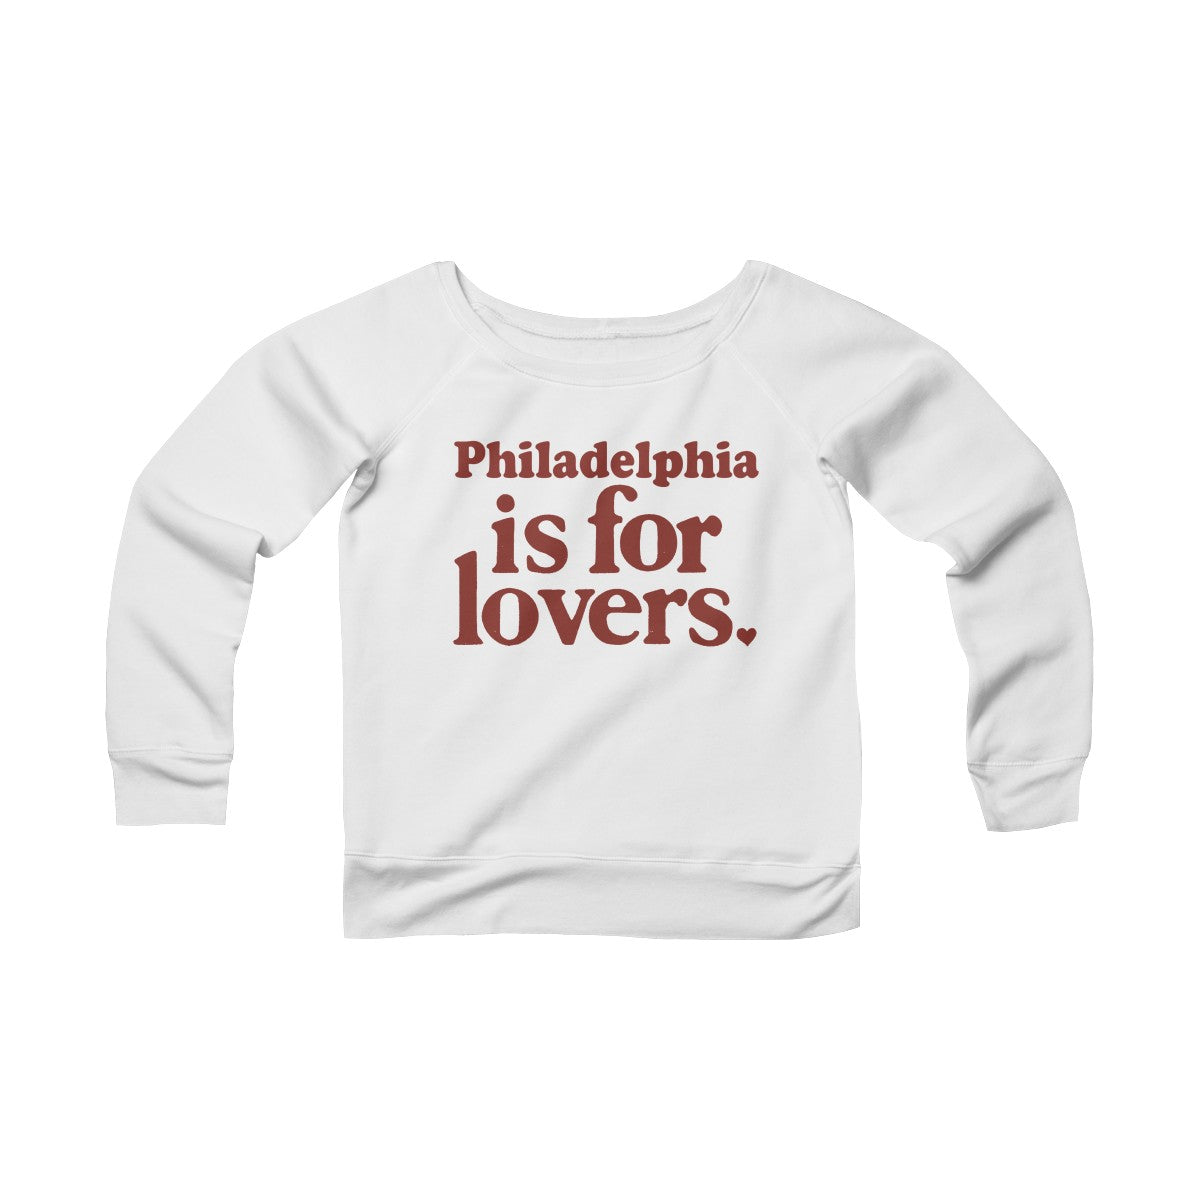 Philadelphia is For Lovers Women's Sponge Fleece Wide Neck Sweatshirt